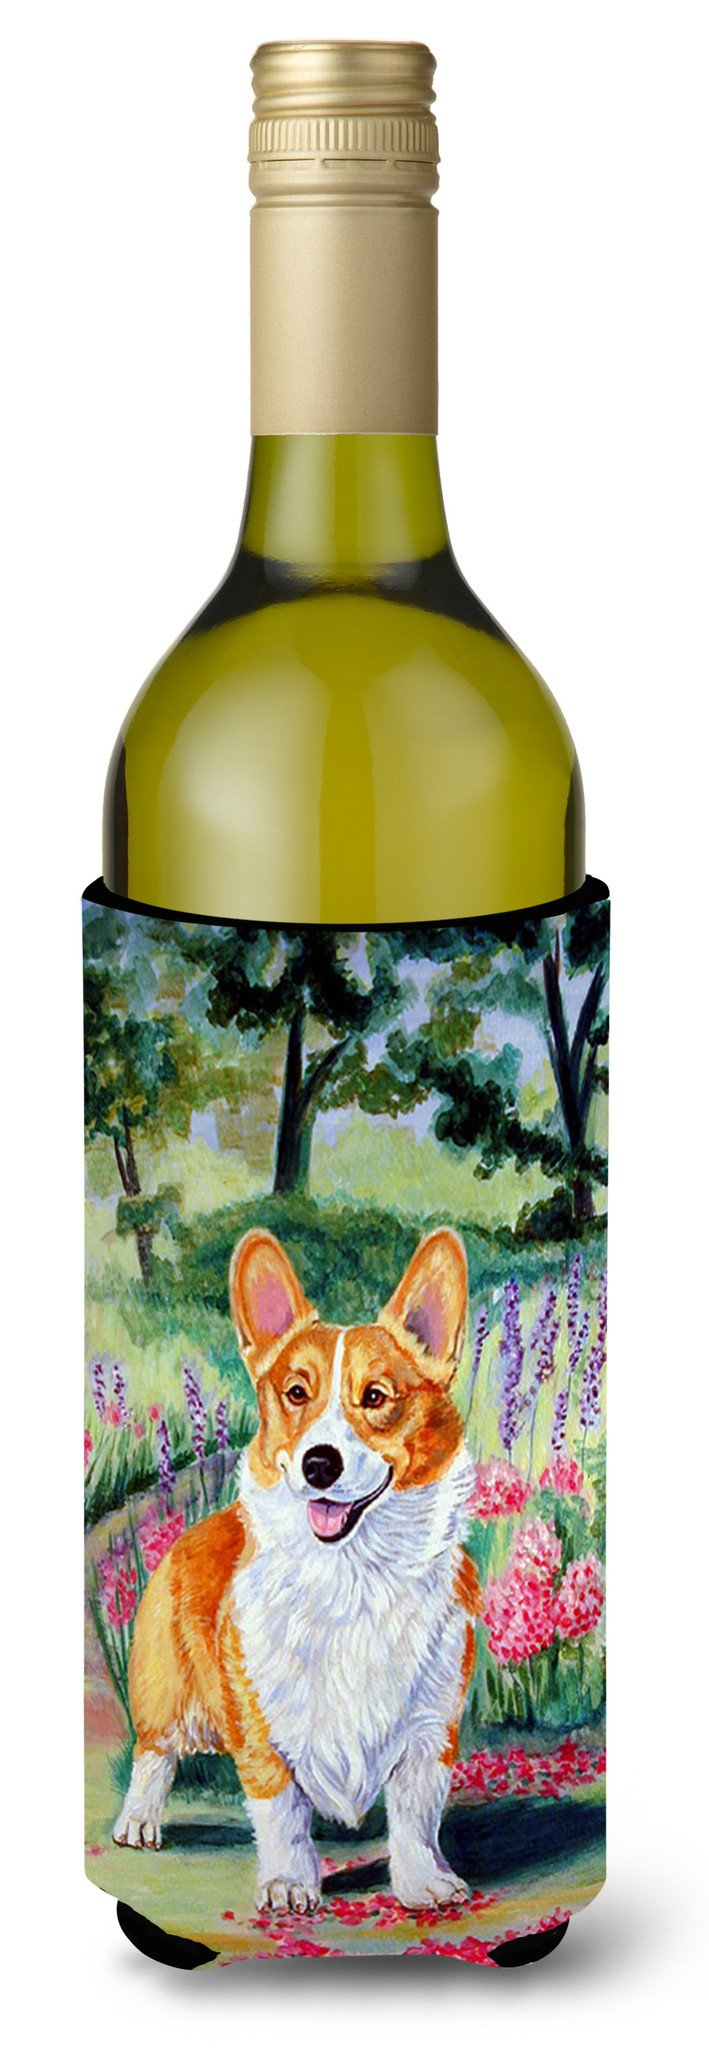 Buy this Pembroke Corgi Springtime Wine Bottle Beverage Insulator Beverage Insulator Hugger